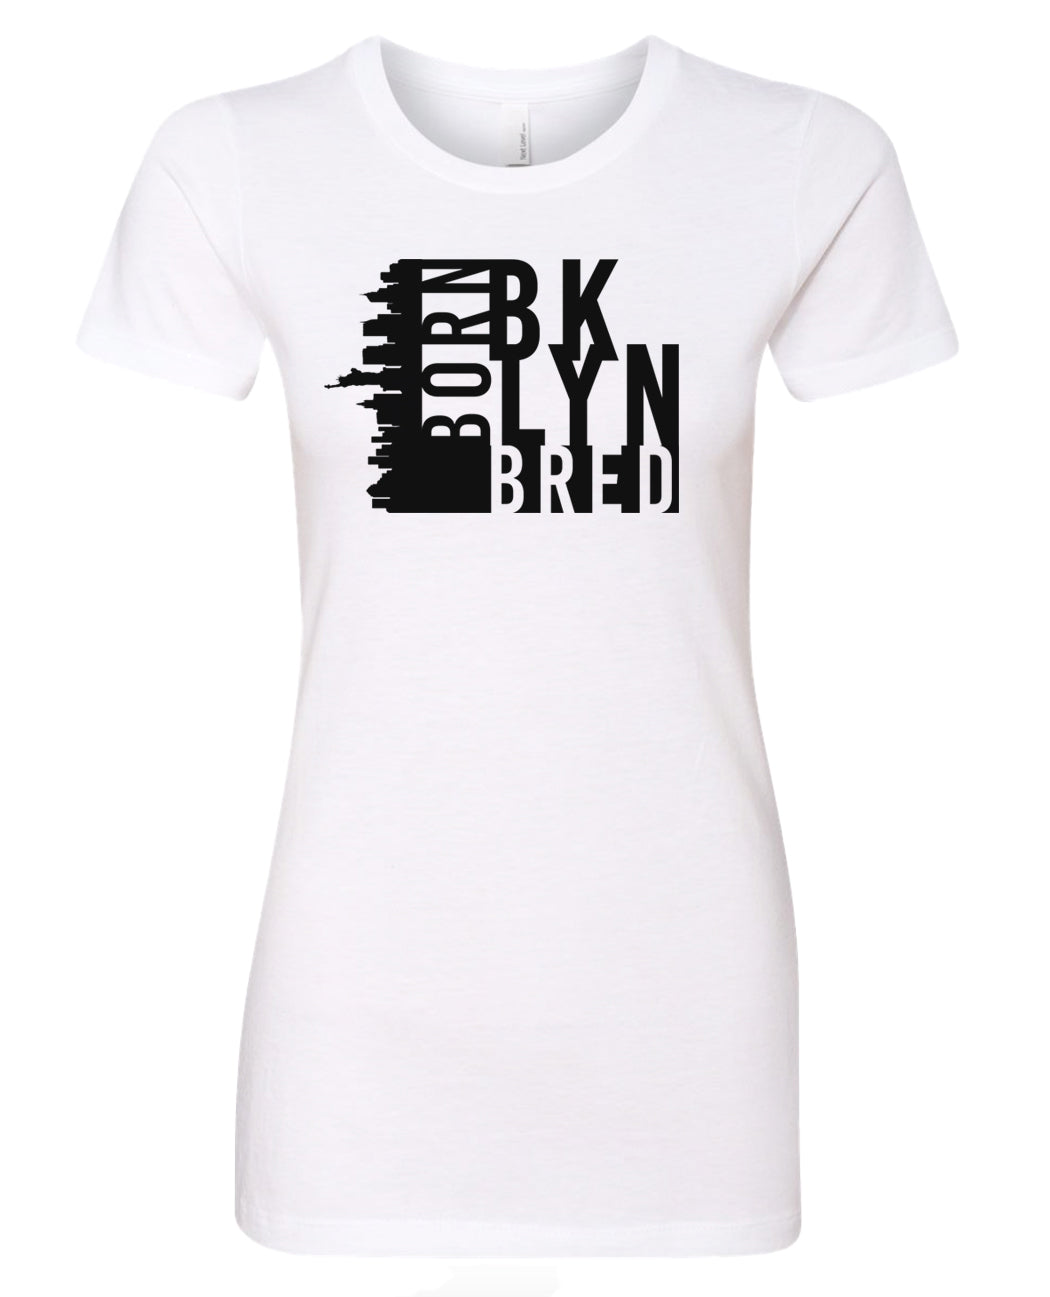 white Brooklyn born and bred women's t-shirt